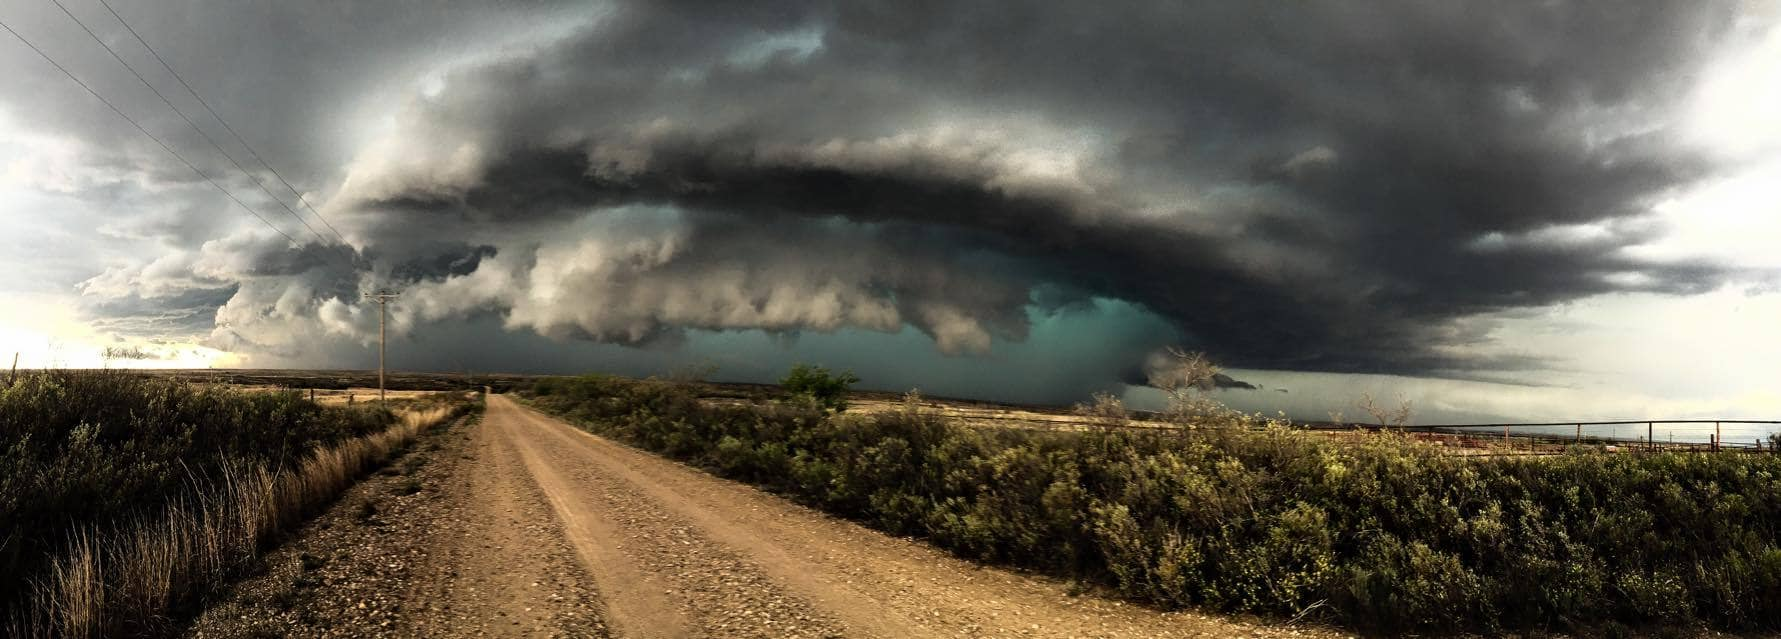 Texas Panhandle yesterday!